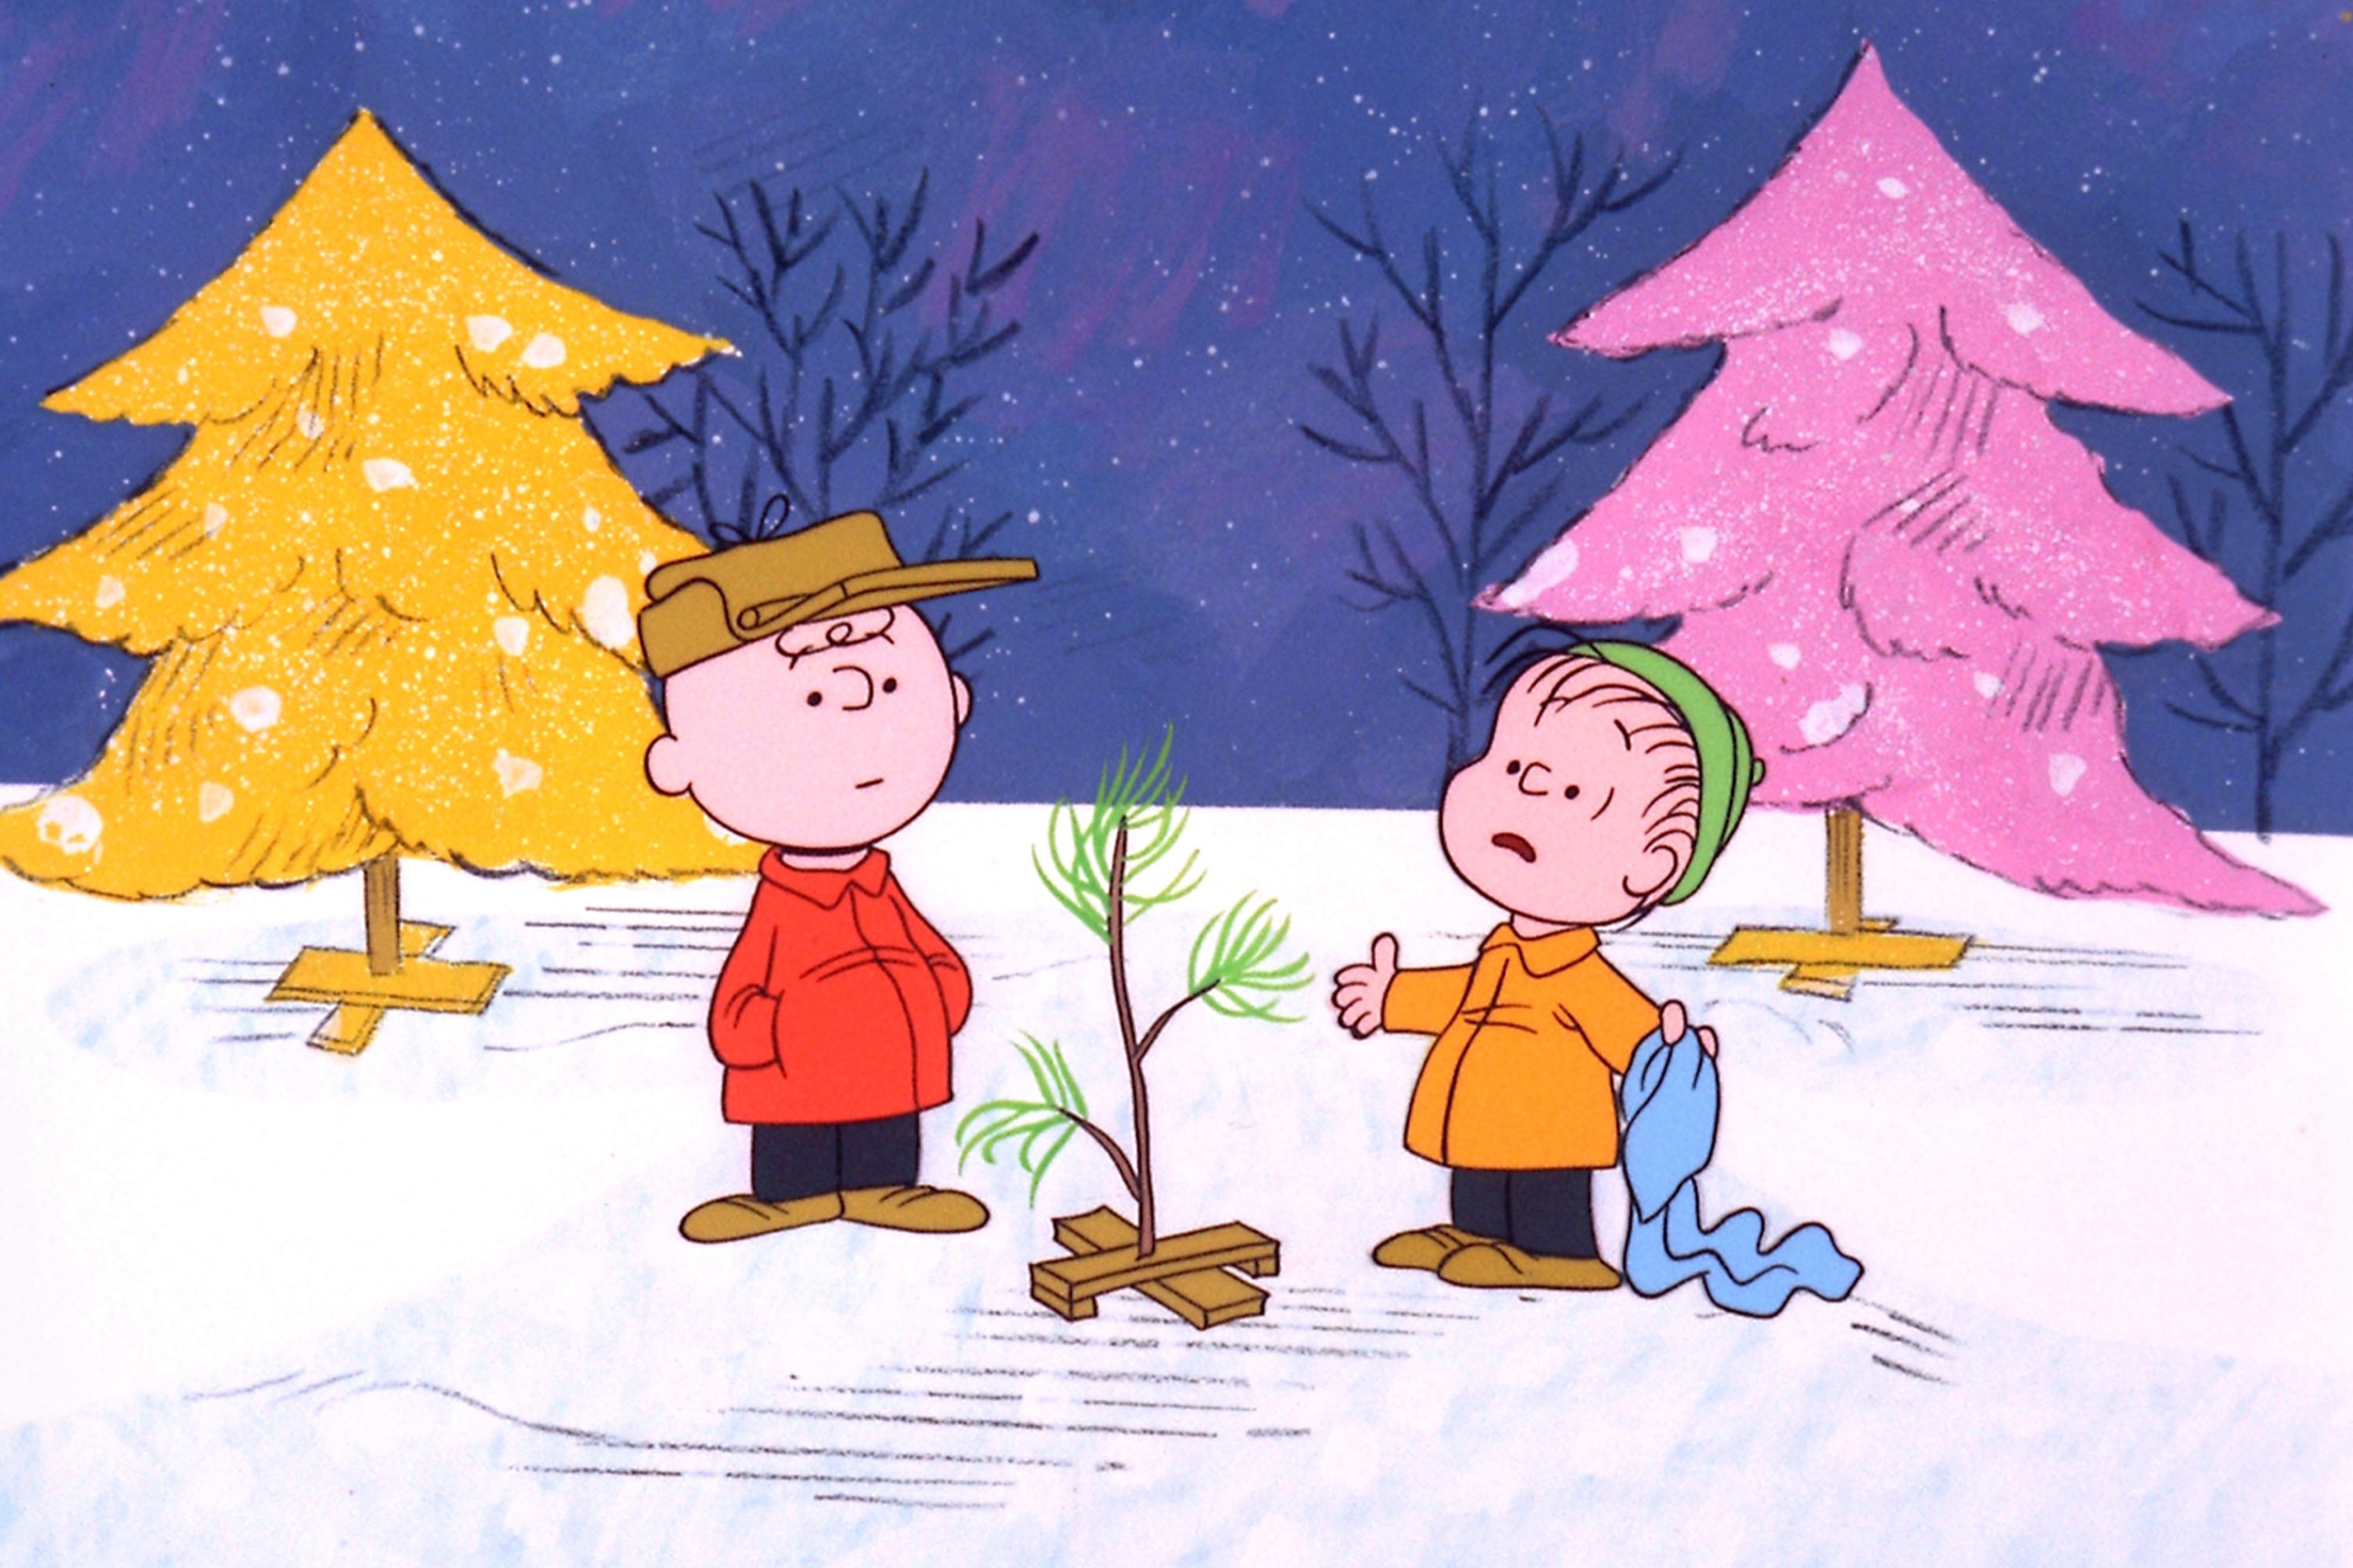 When Does Charlie Brown Come On 2020 Christmas Charlie Brown holiday specials return to broadcast TV | Fox 59